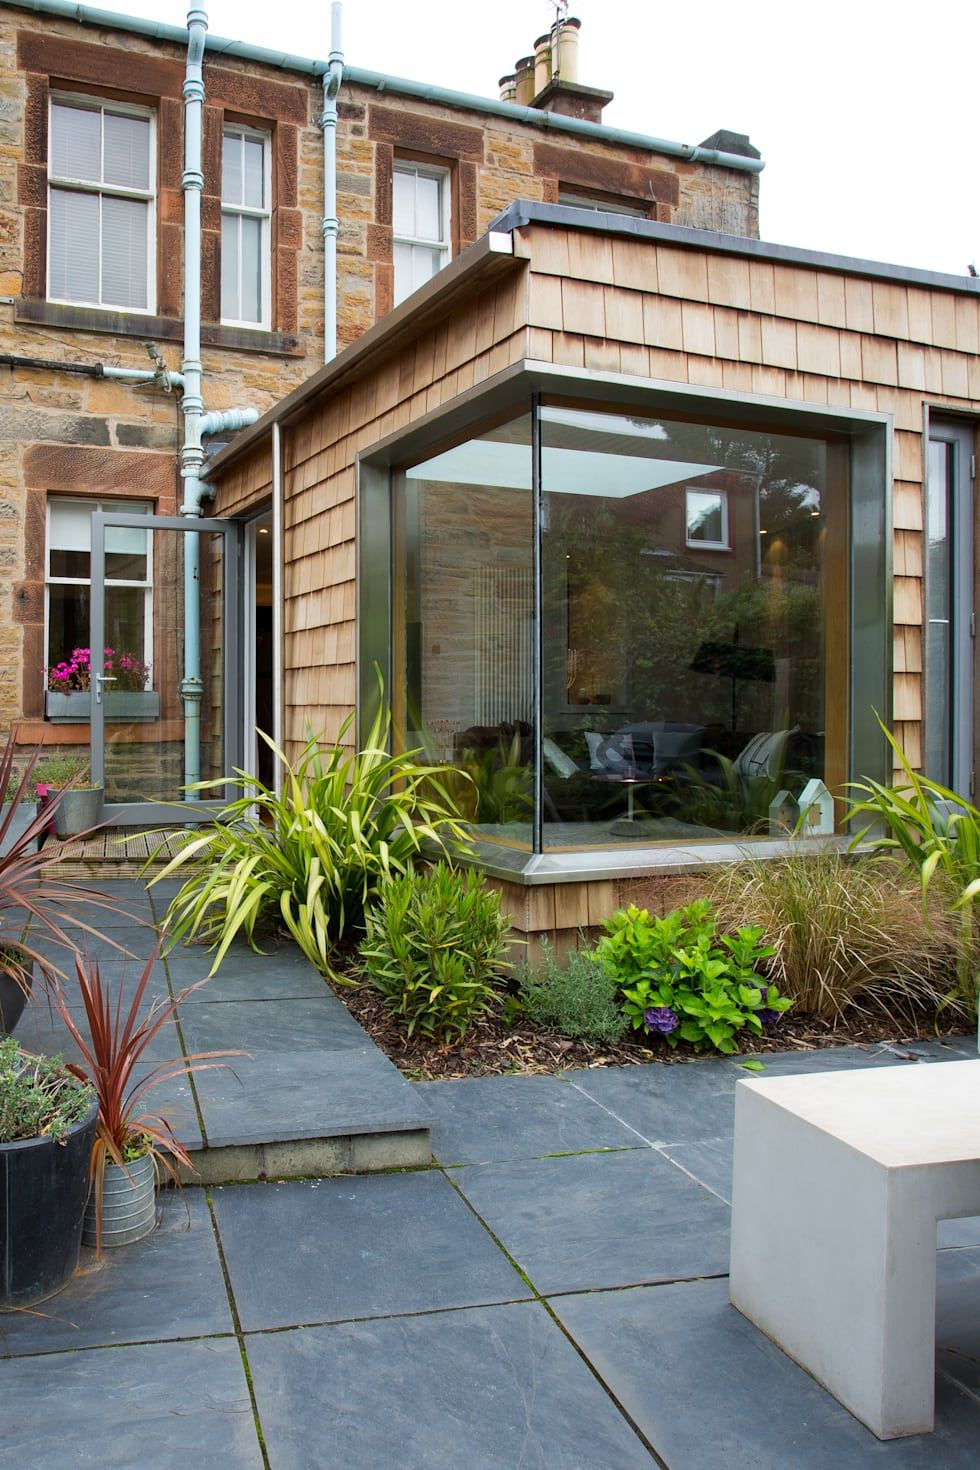 House improving extensions  18 affordable ideas is part of Room extensions - If you're fed up of always seeing fantastical architectdesigned extensions that must have cost a small fortune, we're here to help!